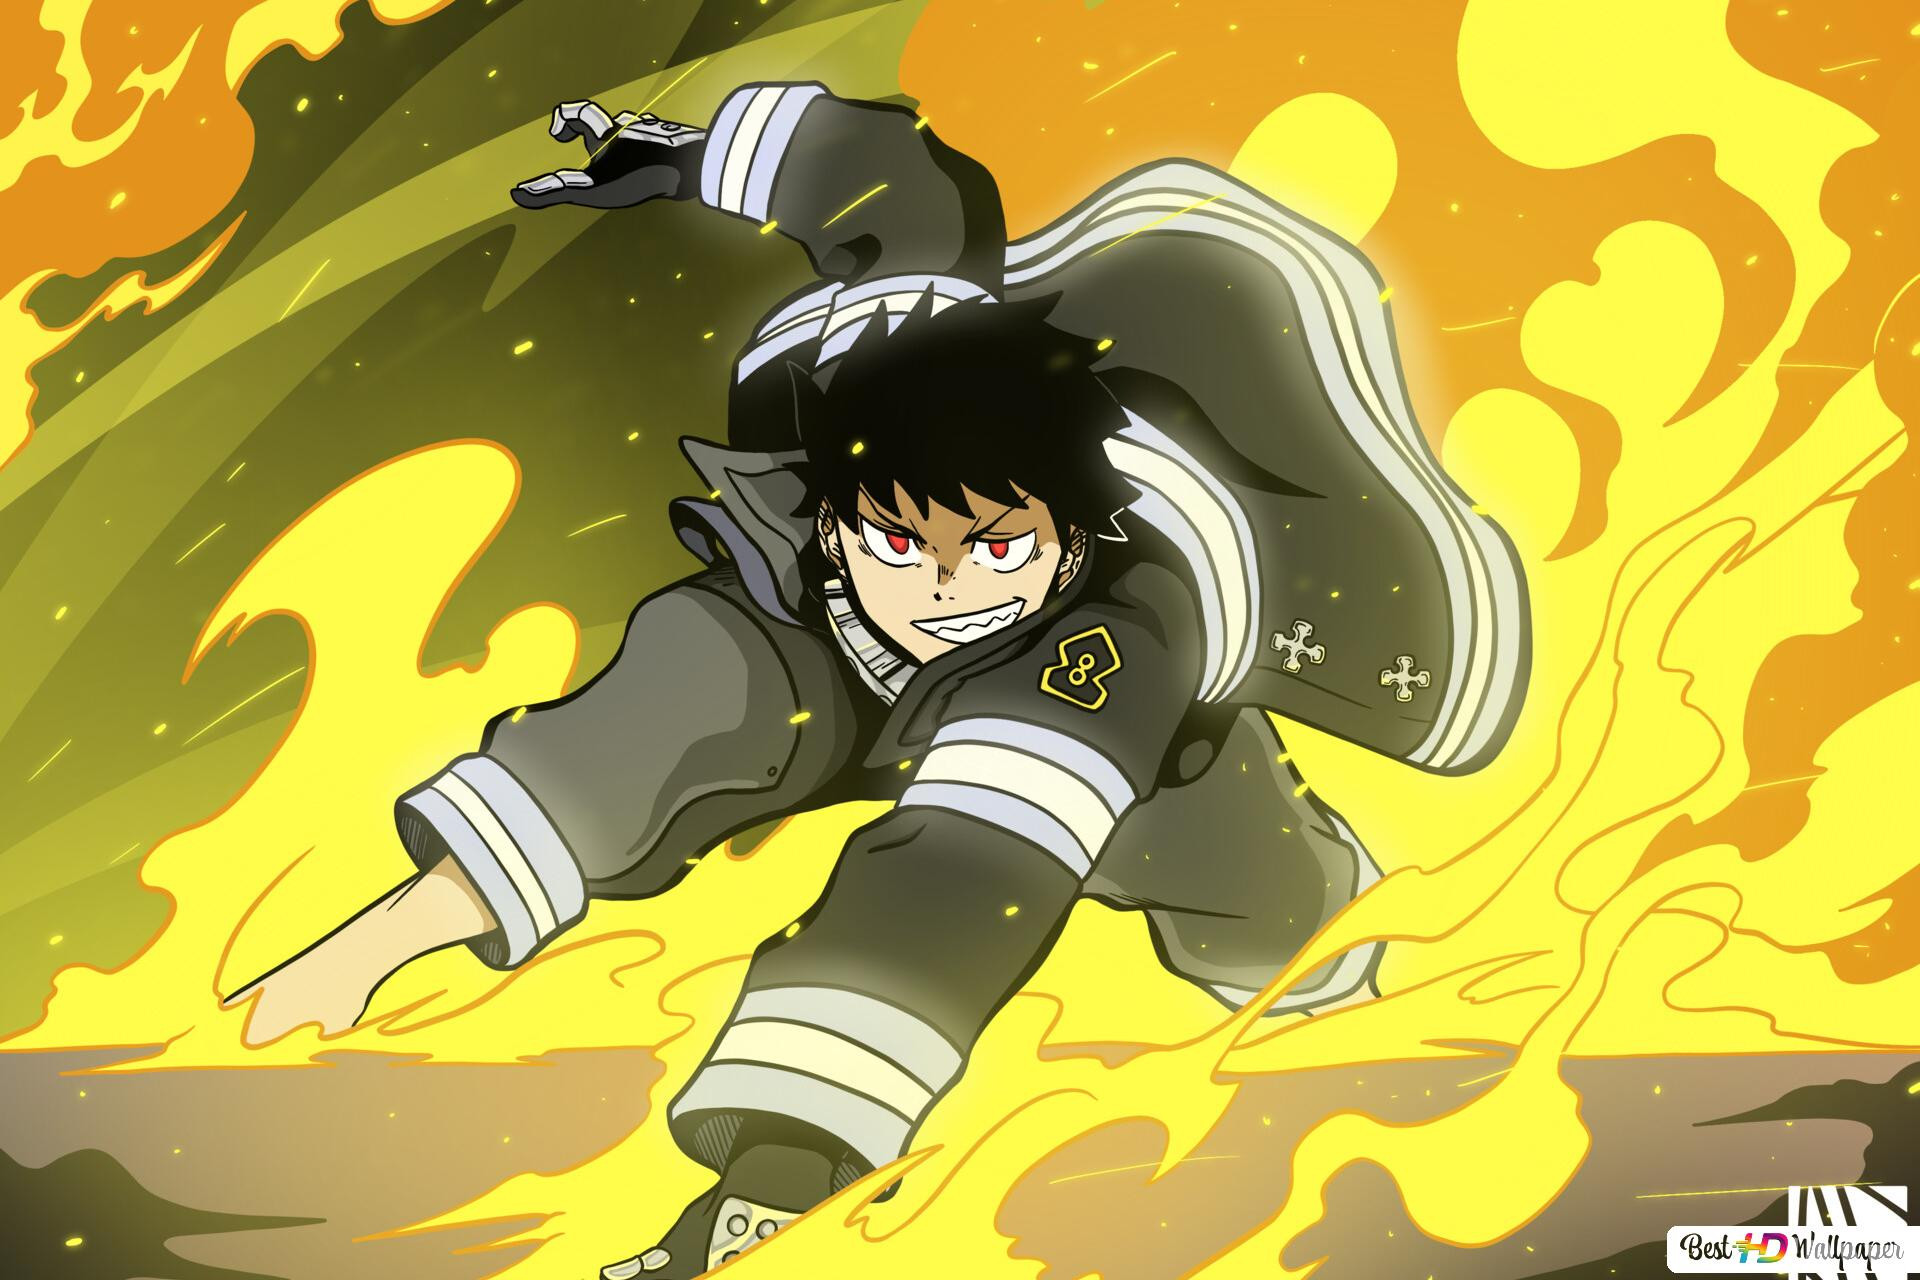 Fire Force Shinra Kusakabe Flames Hd Wallpaper Download